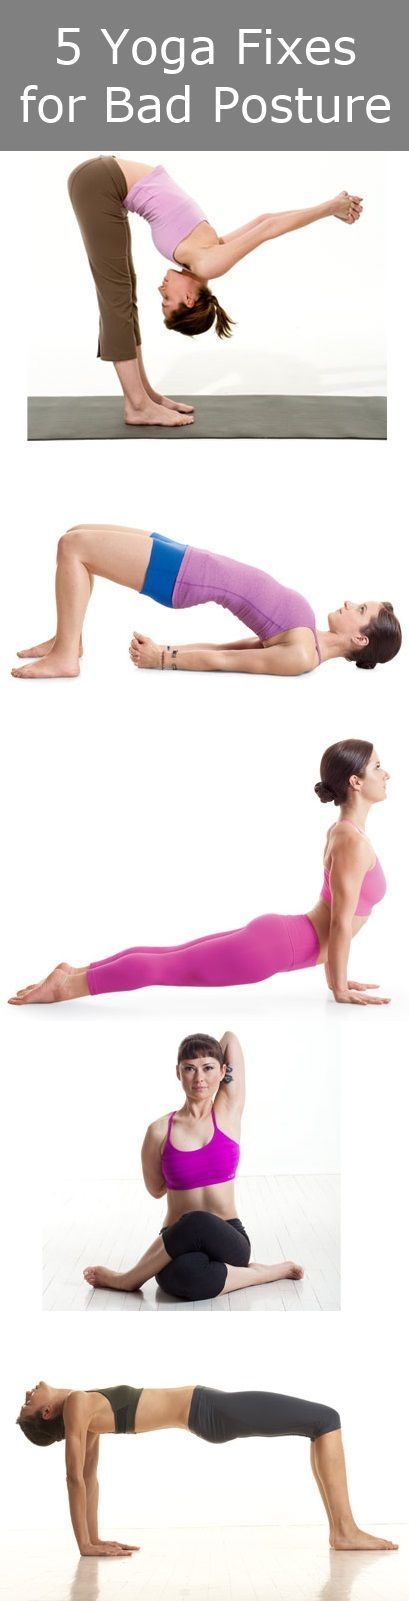 5 Yoga Fixes for Bad Posture - this is great for anyone after you've been sitting for awhile and need a good safe stretch!